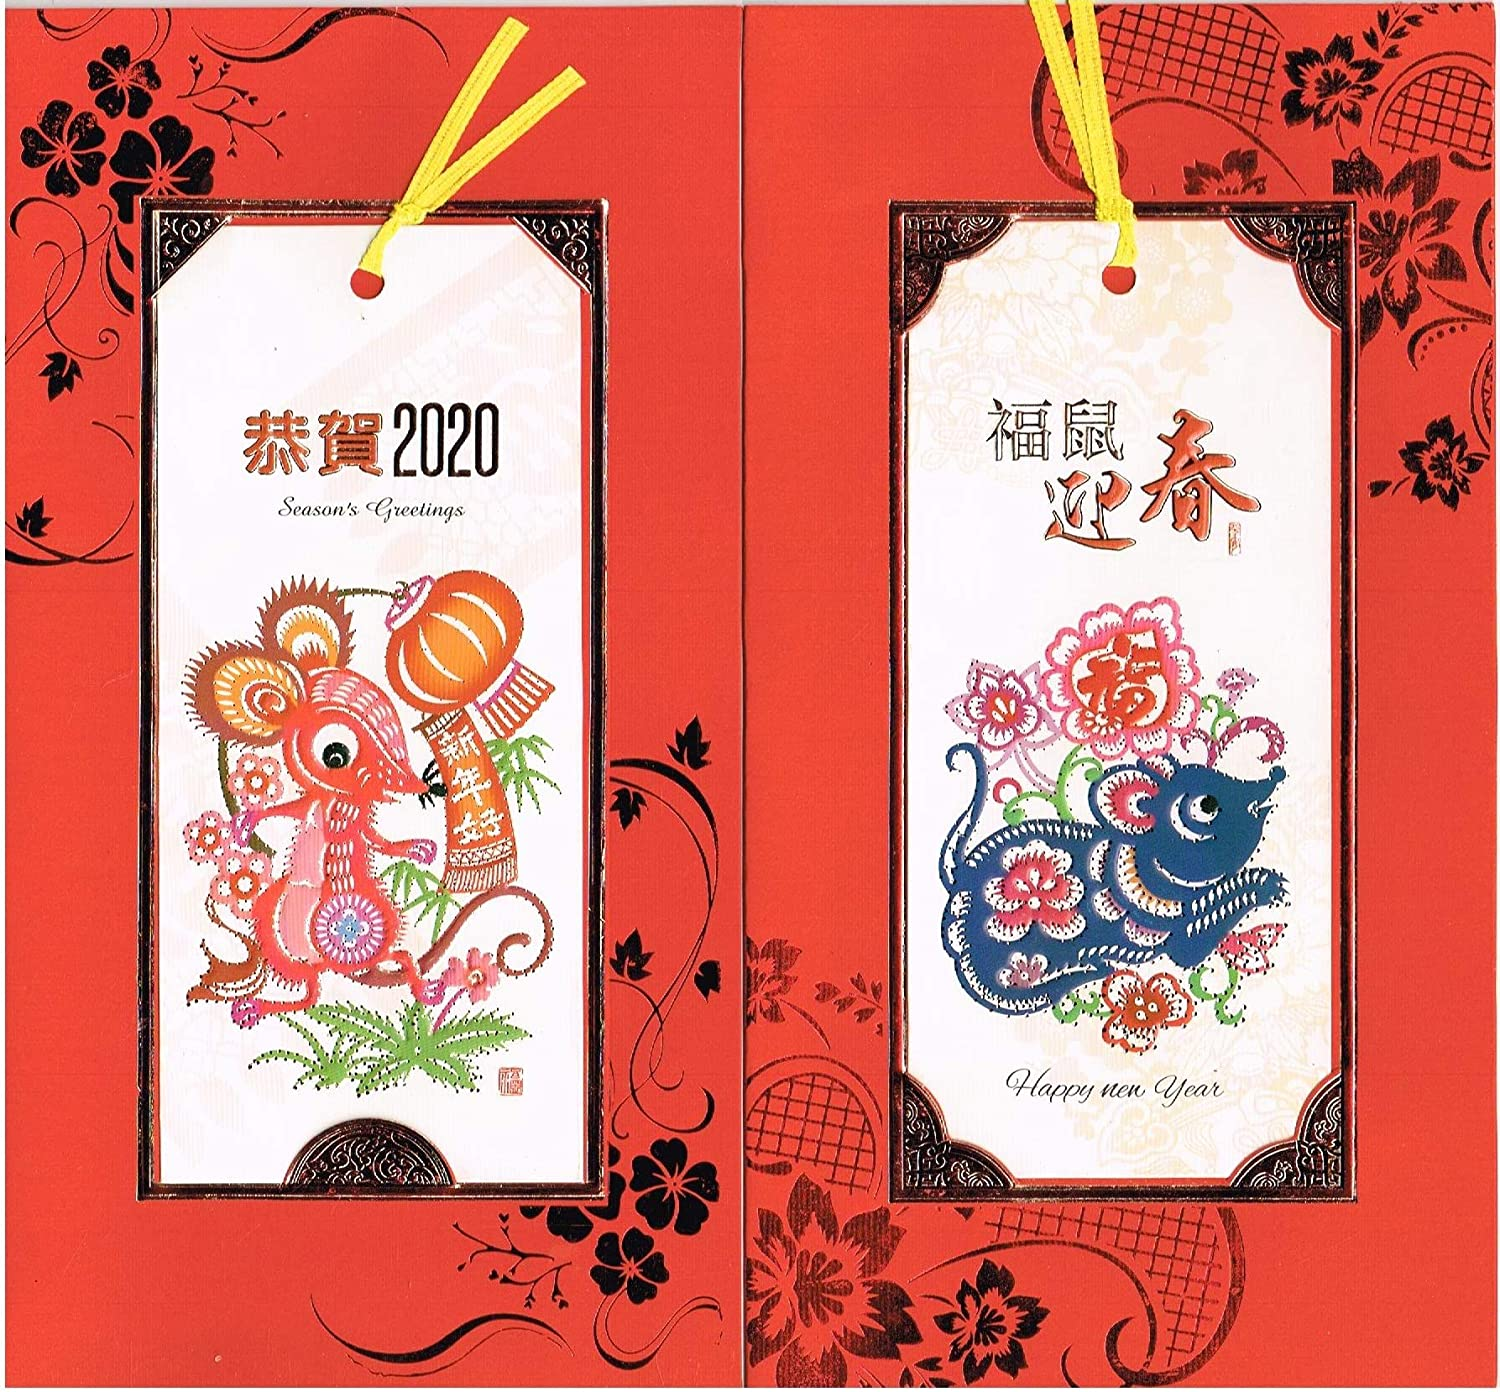 amazon com 4 pcs 2020 chinese new year cards year of the rat happiness happy new year written in chinese pack of 4 with 4 designs with pink envelopes everything else 4 pcs 2020 chinese new year cards year of the rat happiness happy new year written in chinese pack of 4 with 4 designs with pink envelopes